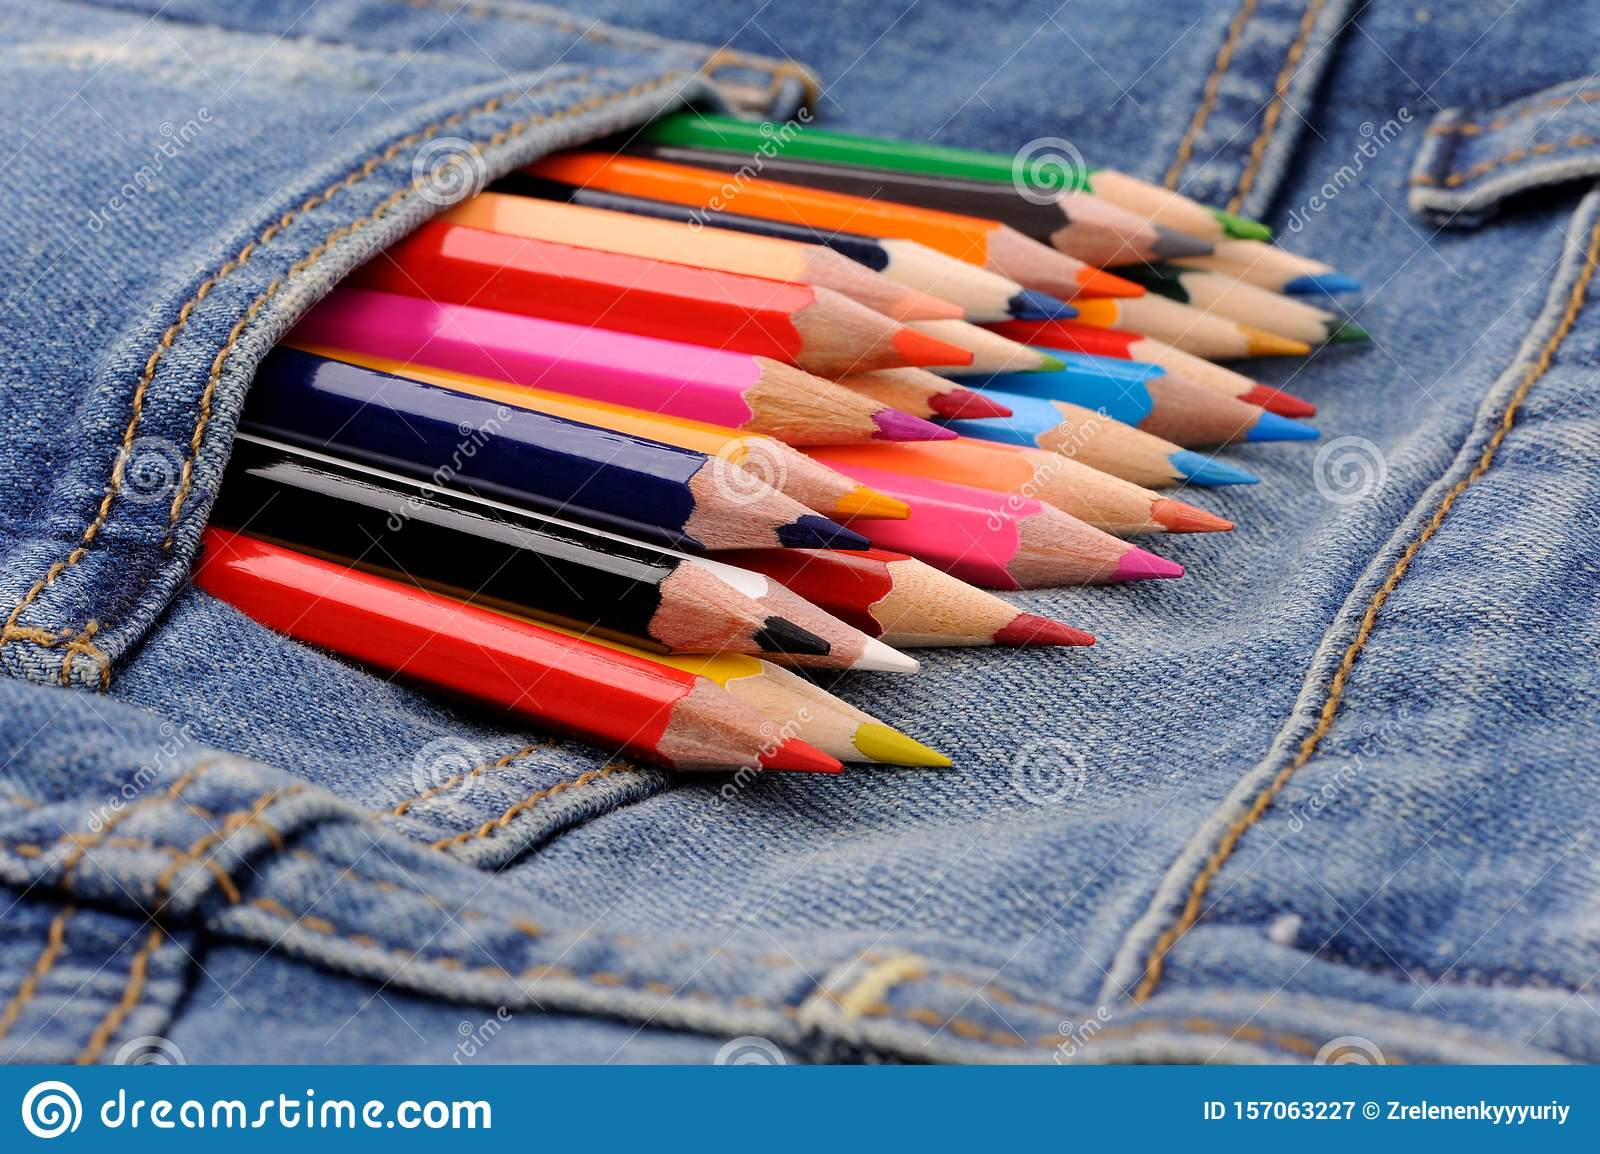 Set Of Multicolored Pencils In Blue Jeans Pocket Stock Image Image Of Education School 157063227,Driveway Gate Designs